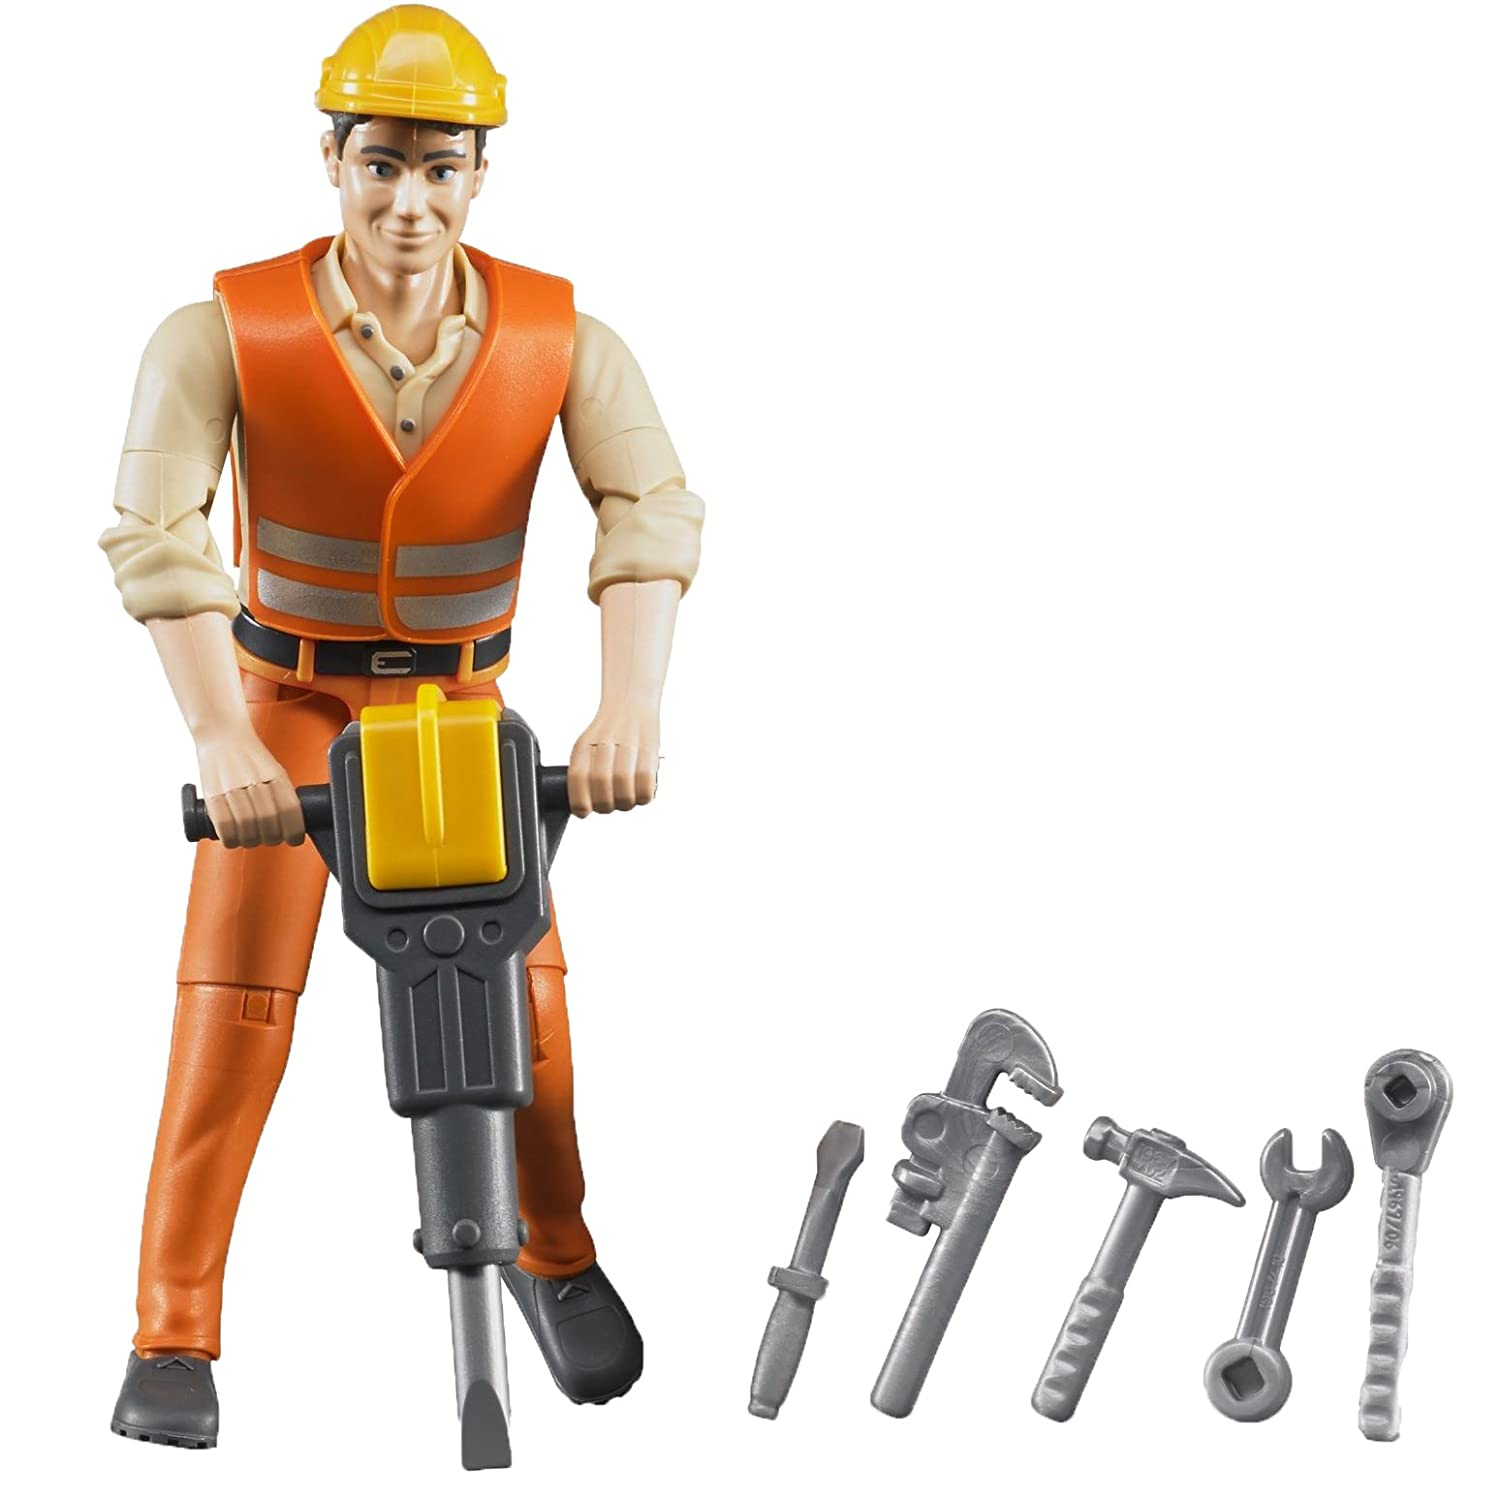 Amazon Bruder Construction Worker With Accessories Toys Games